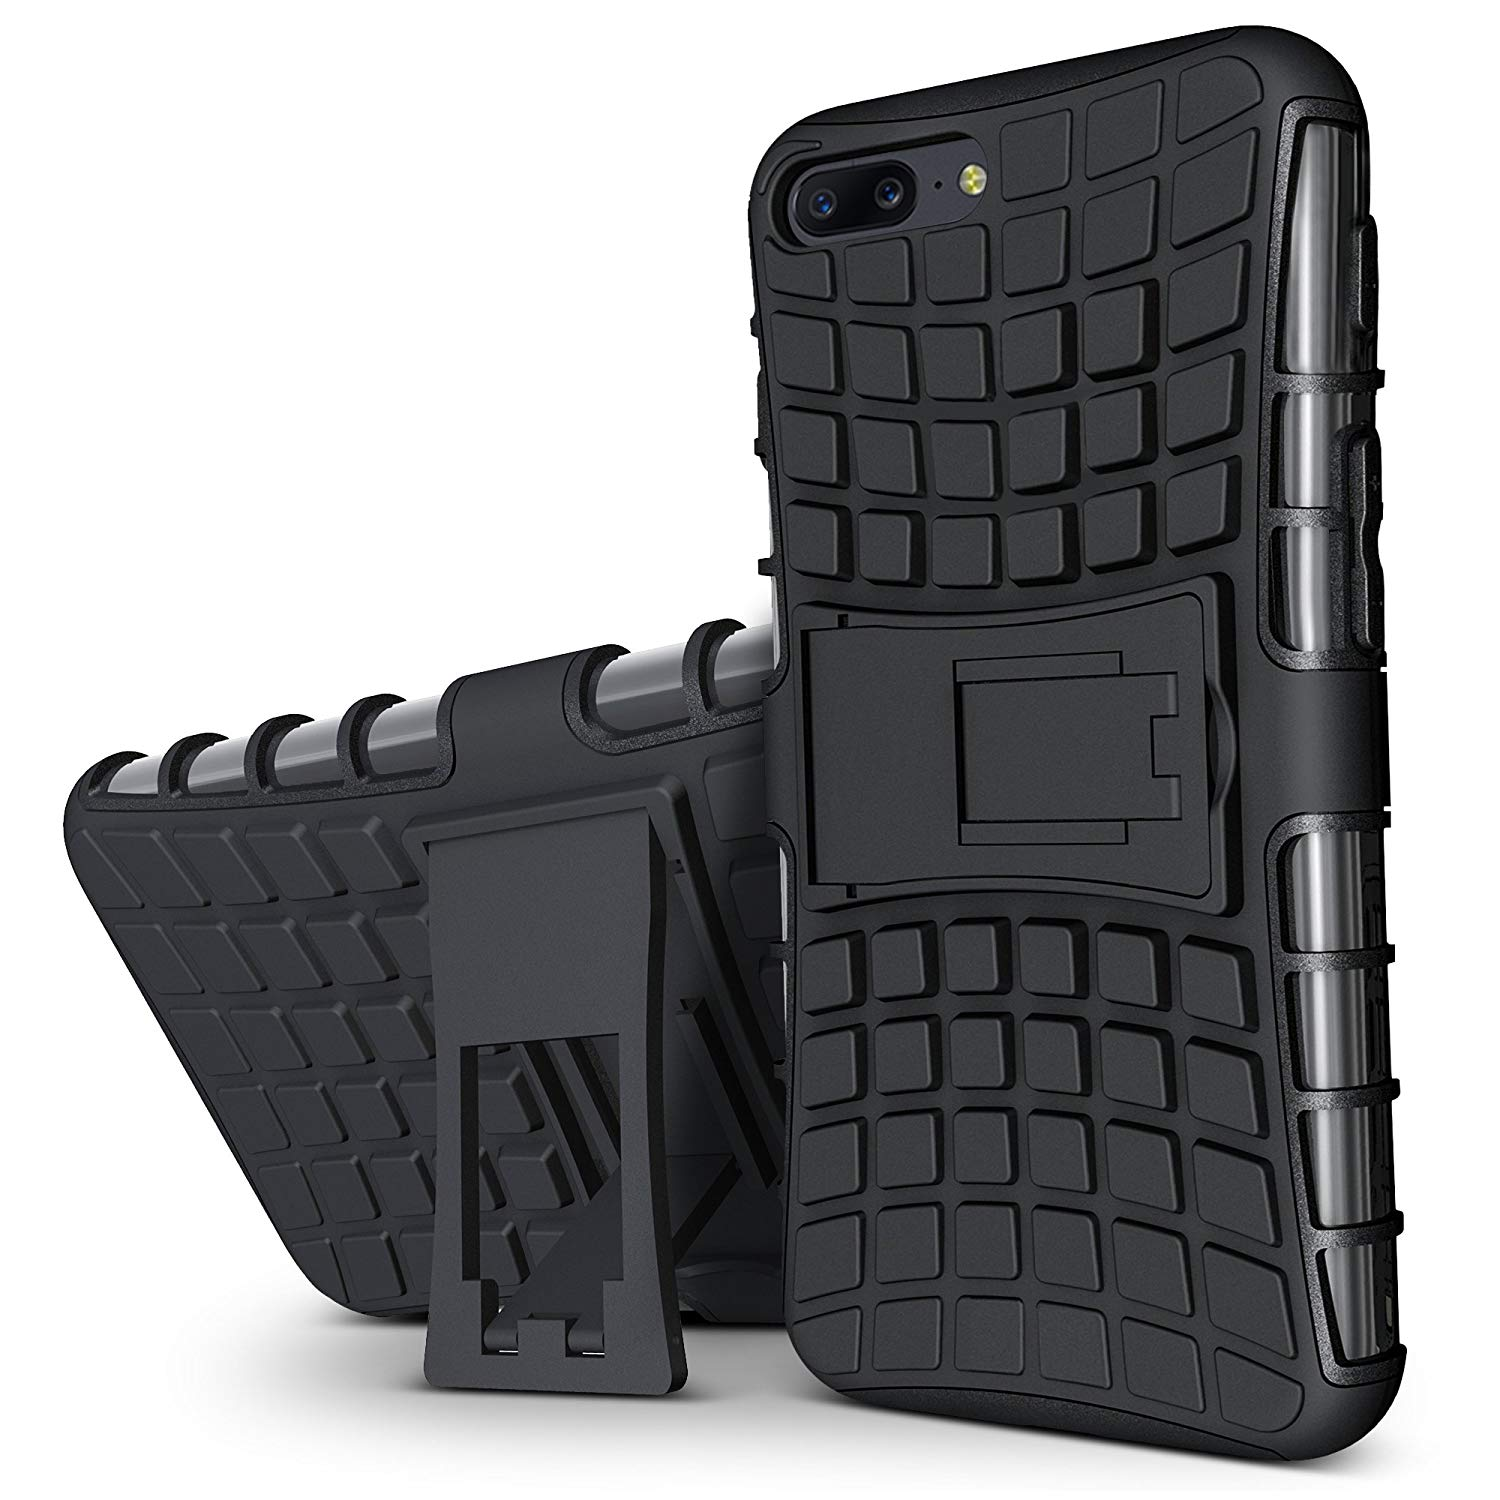 One Plus 5 Back Cover Kickstand Case For One Plus 5 Back Cover  Black